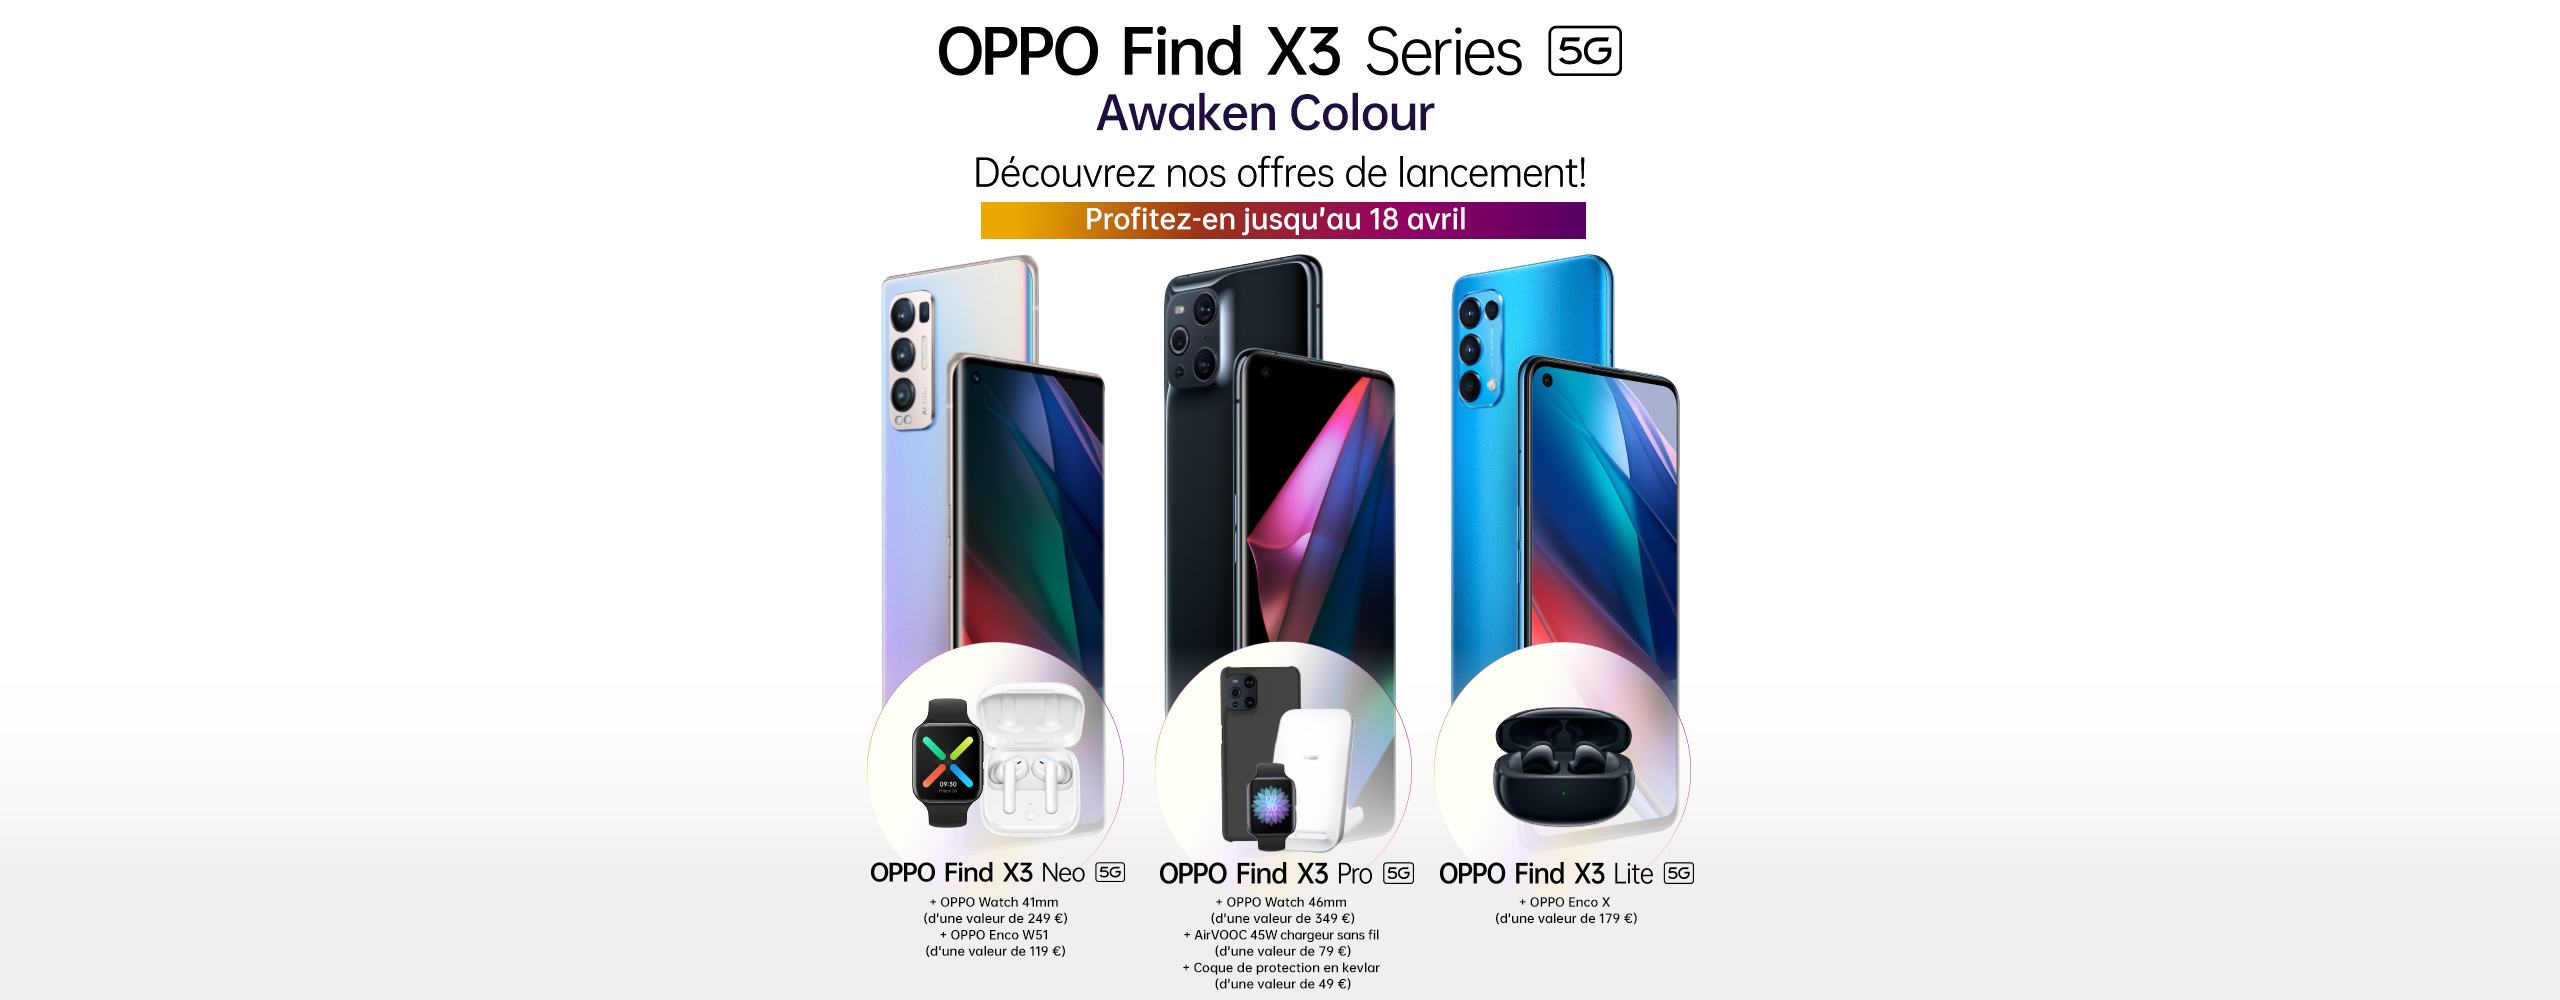 OPPO Find X3 Series 5G - Launch Offer